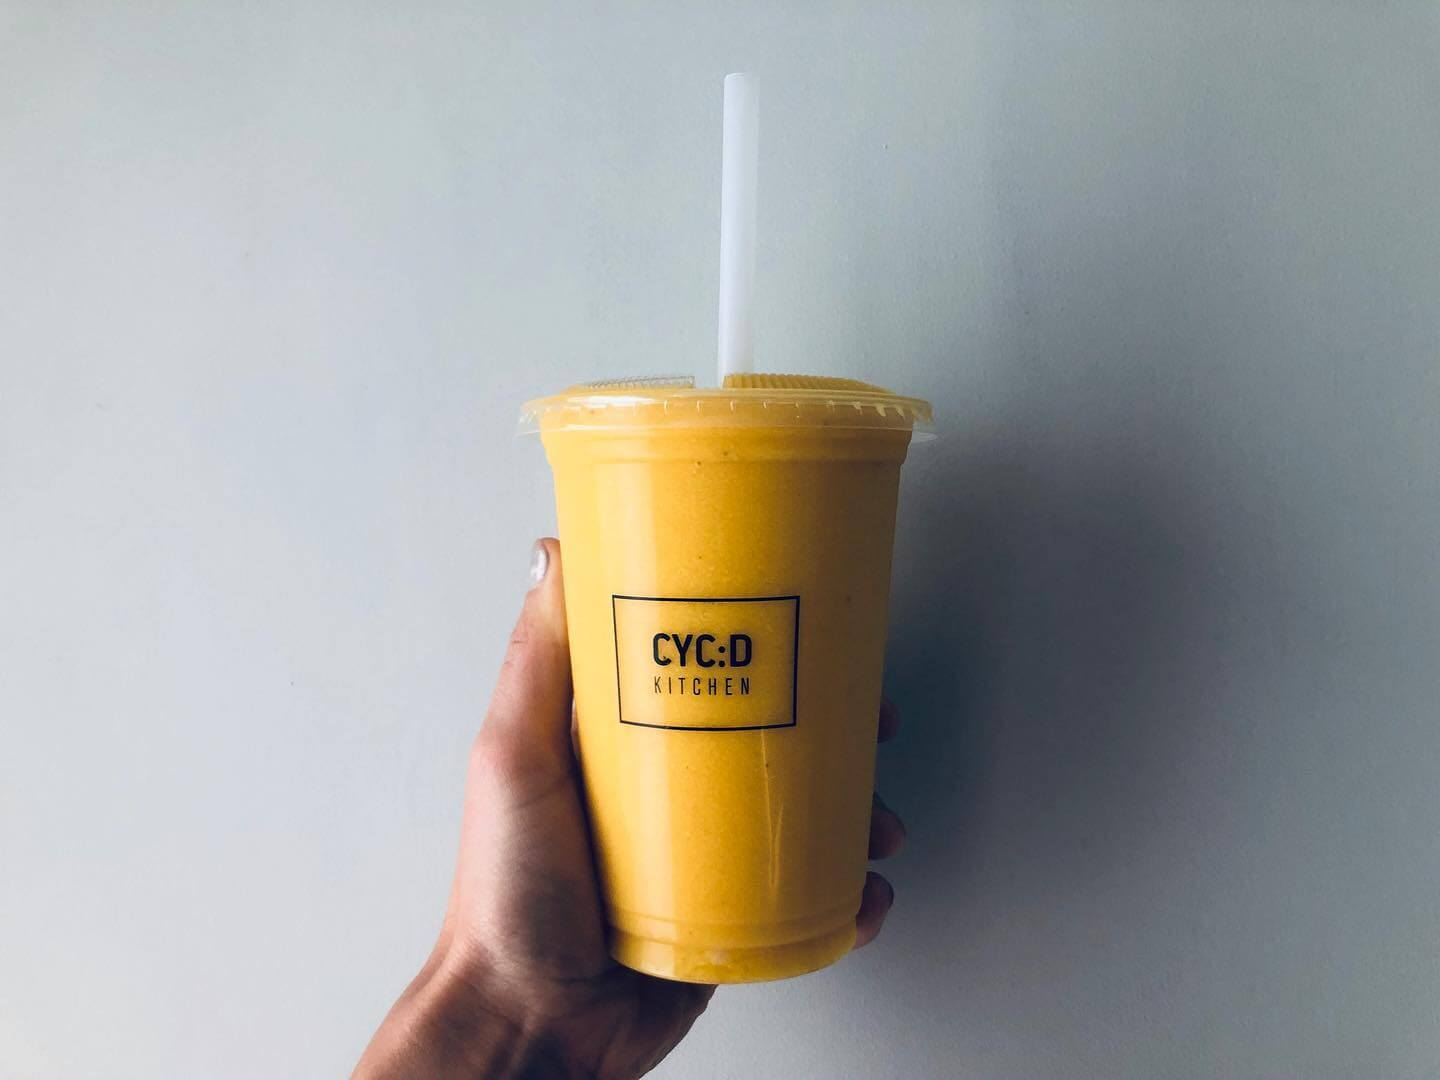 Cyc:d Smoothie | The Mustcard